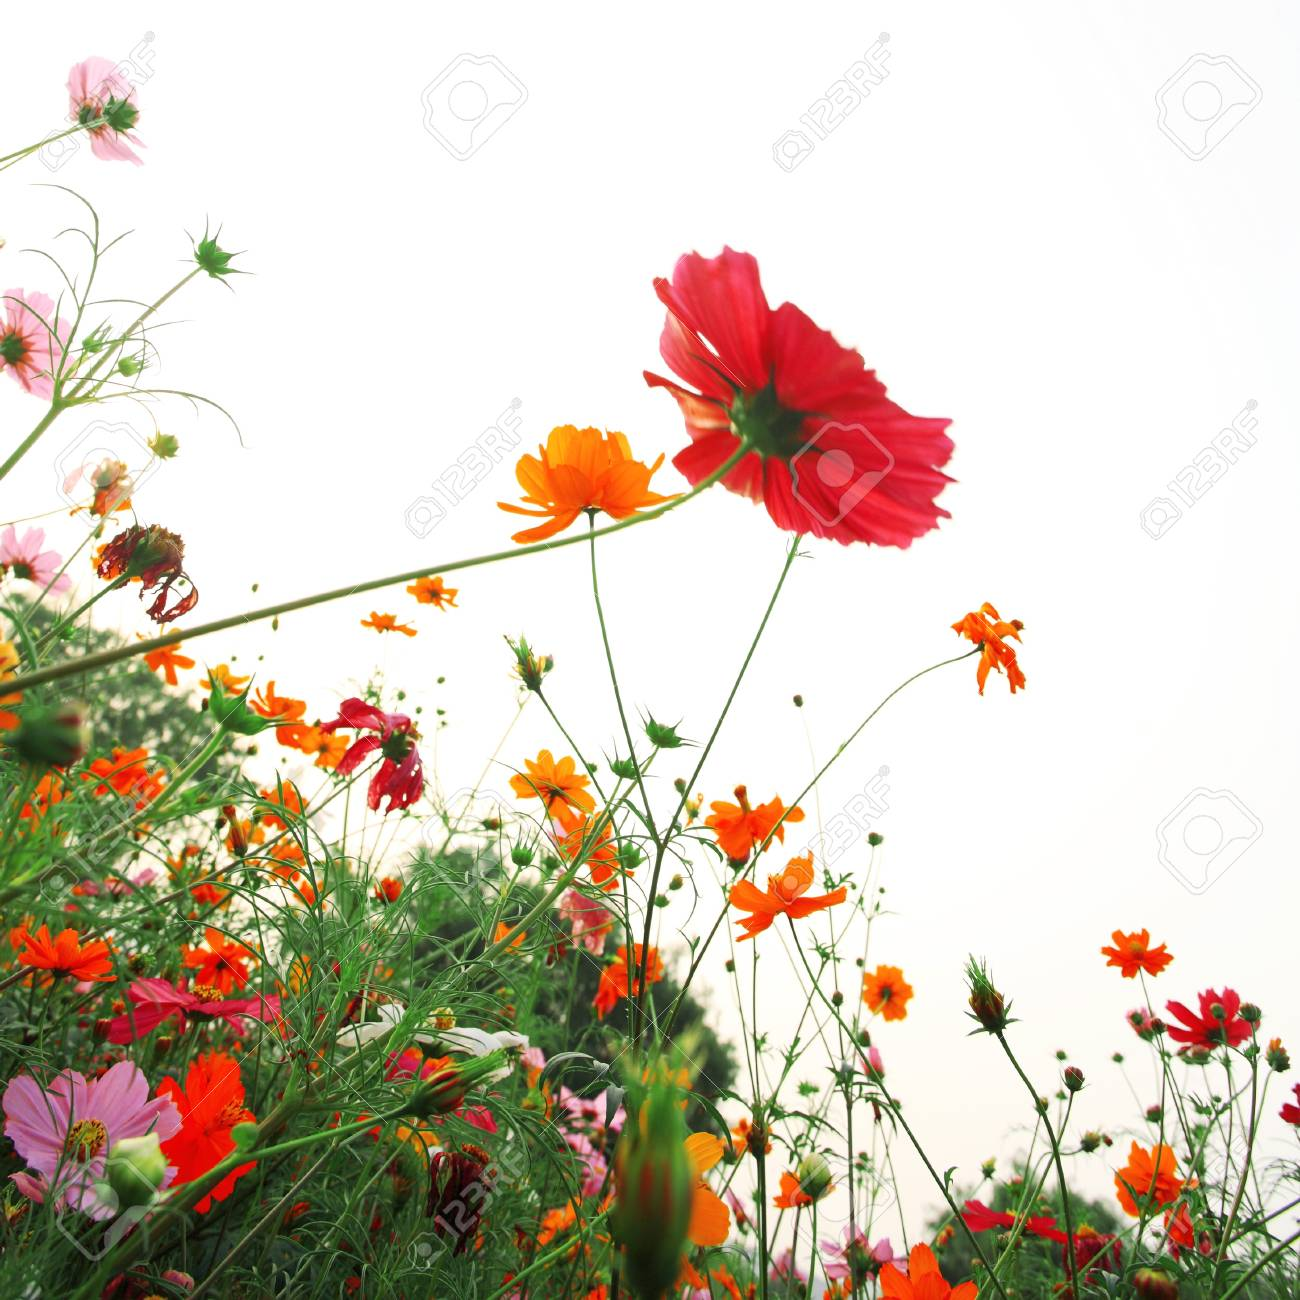 colorful daisies in grass field with white background Stock Photo - 13441103